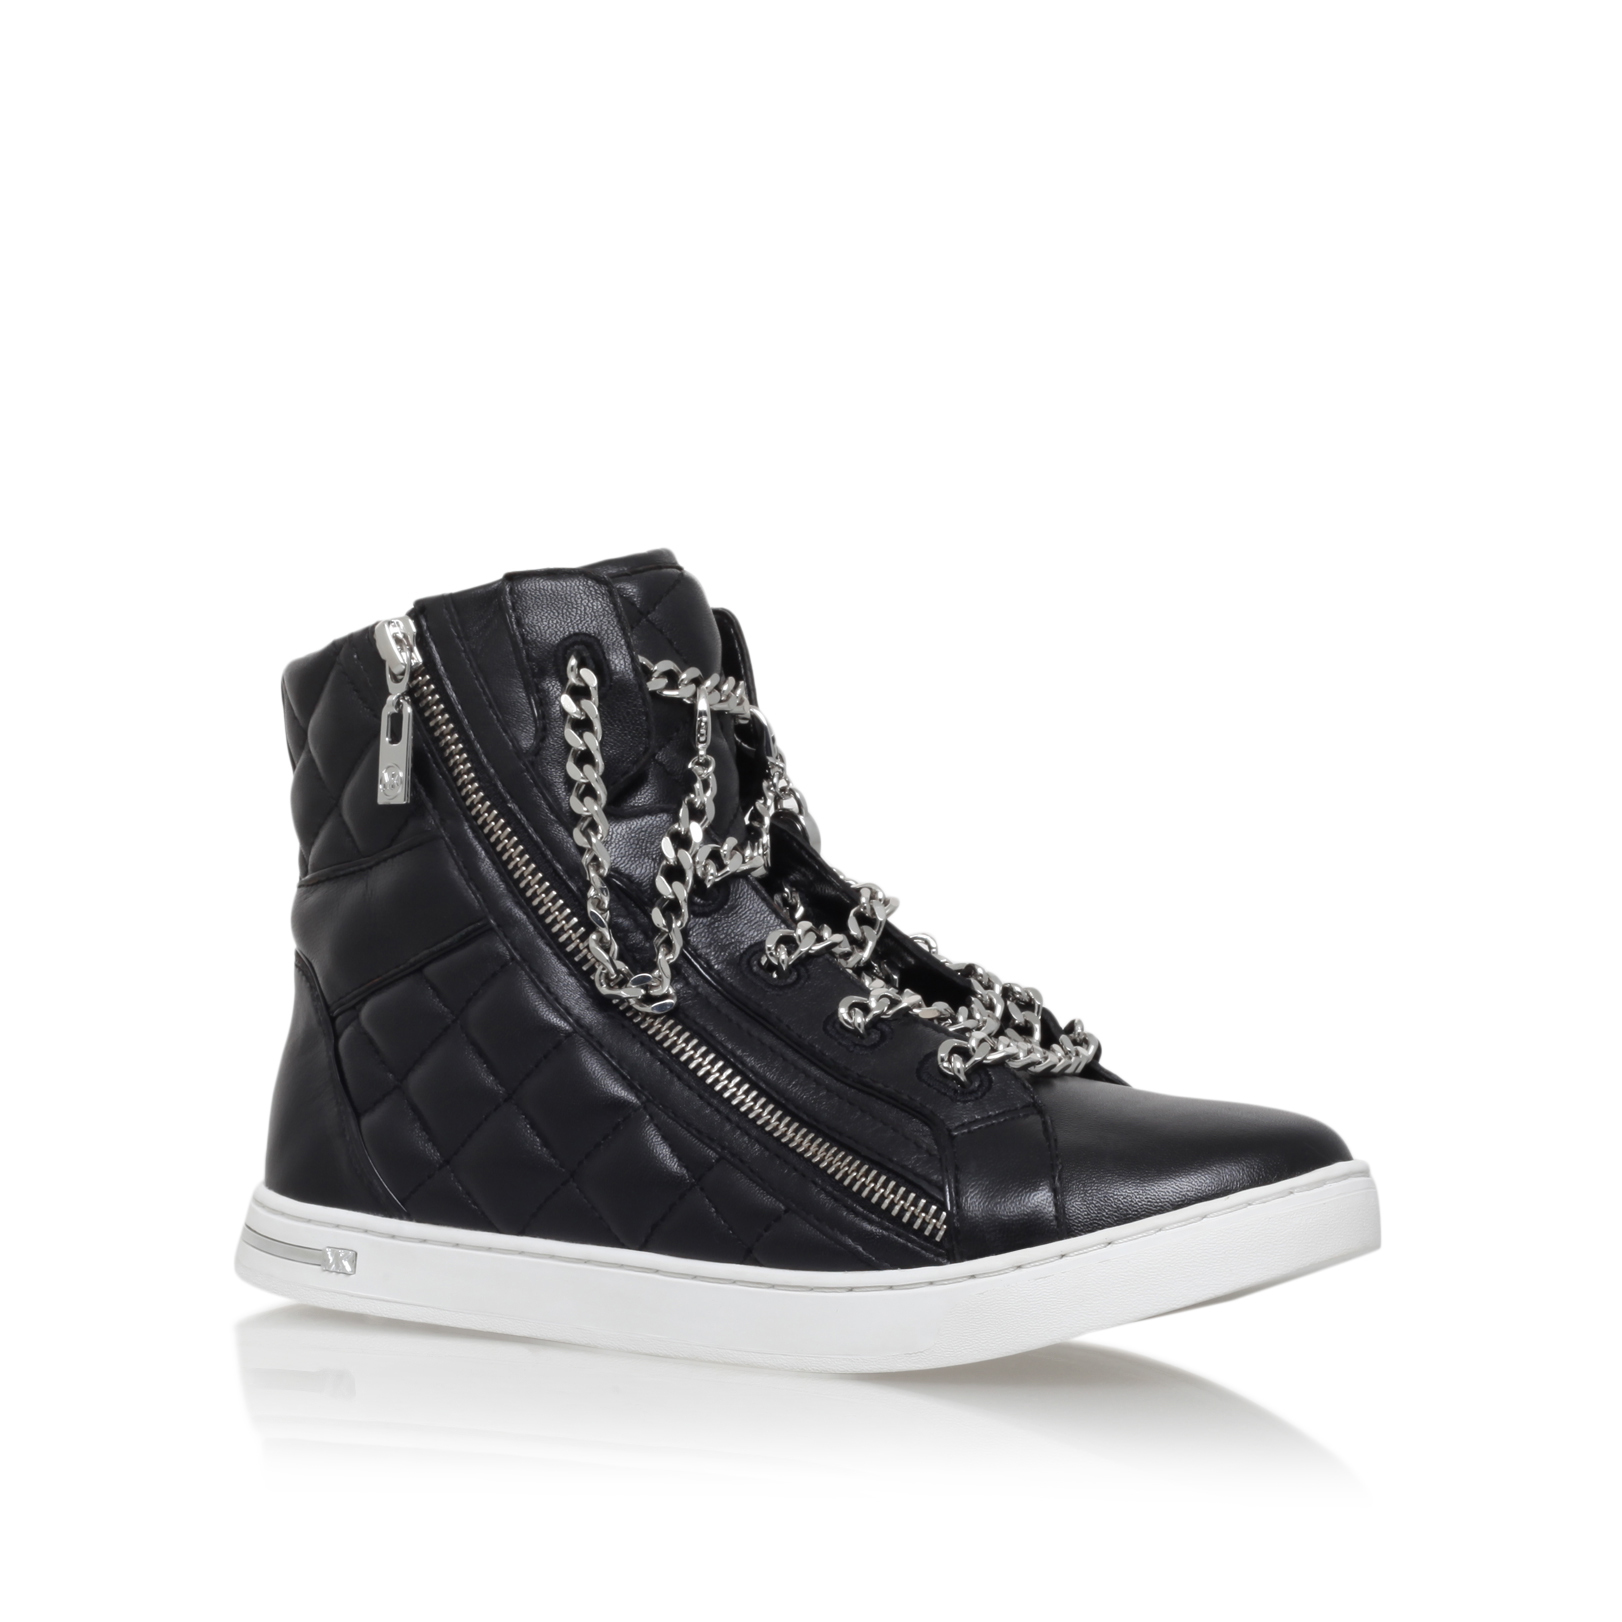 URBAN CHAIN HIGH TOP